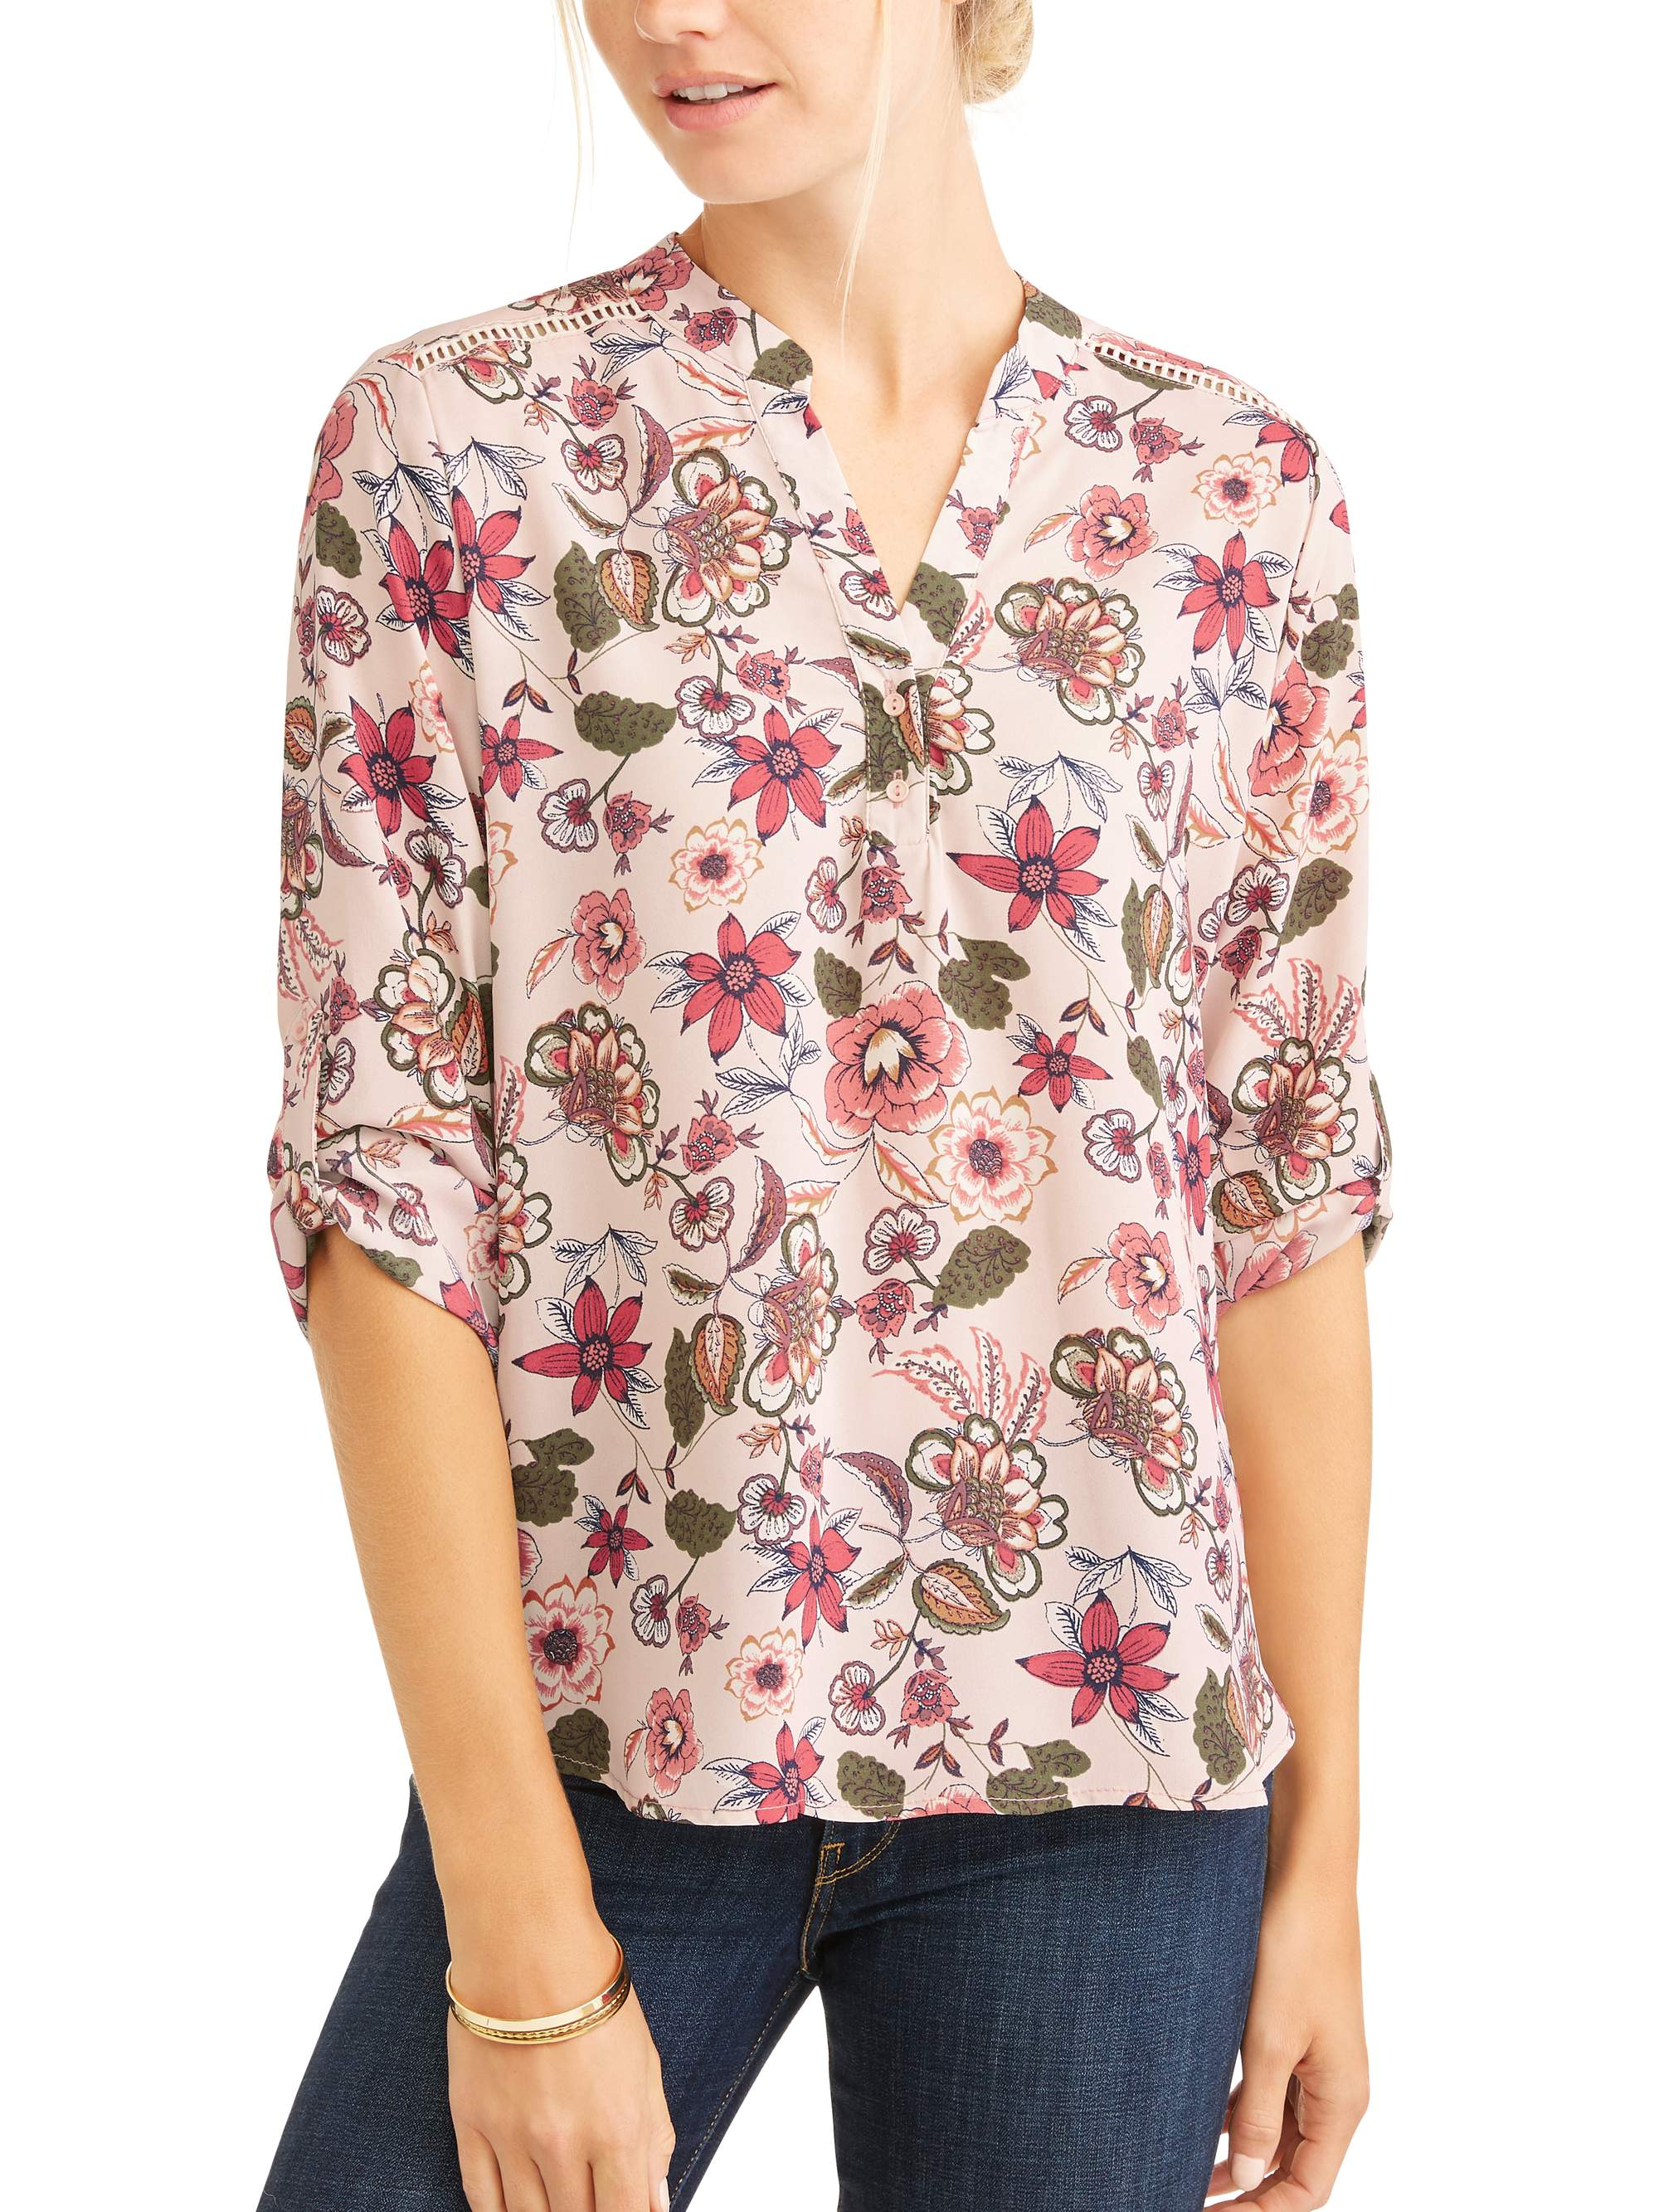 Cure Women's Floral Ladder Stitch Trim Popover Shirt by CURE APPAREL